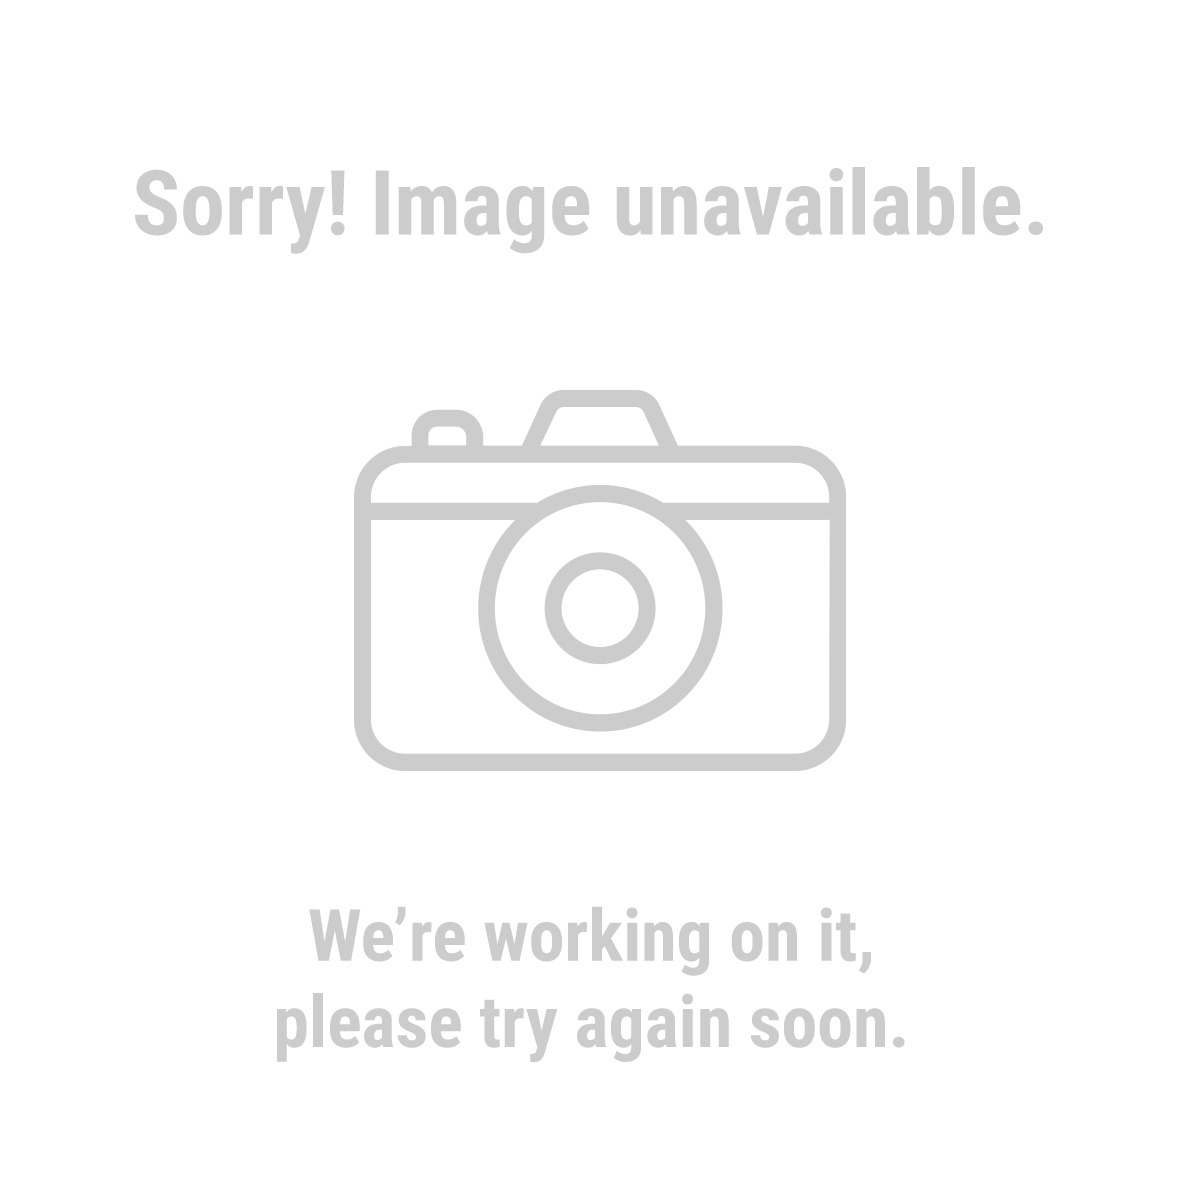 17 in x 4 in self adhesive rubber safety mat with tread surface